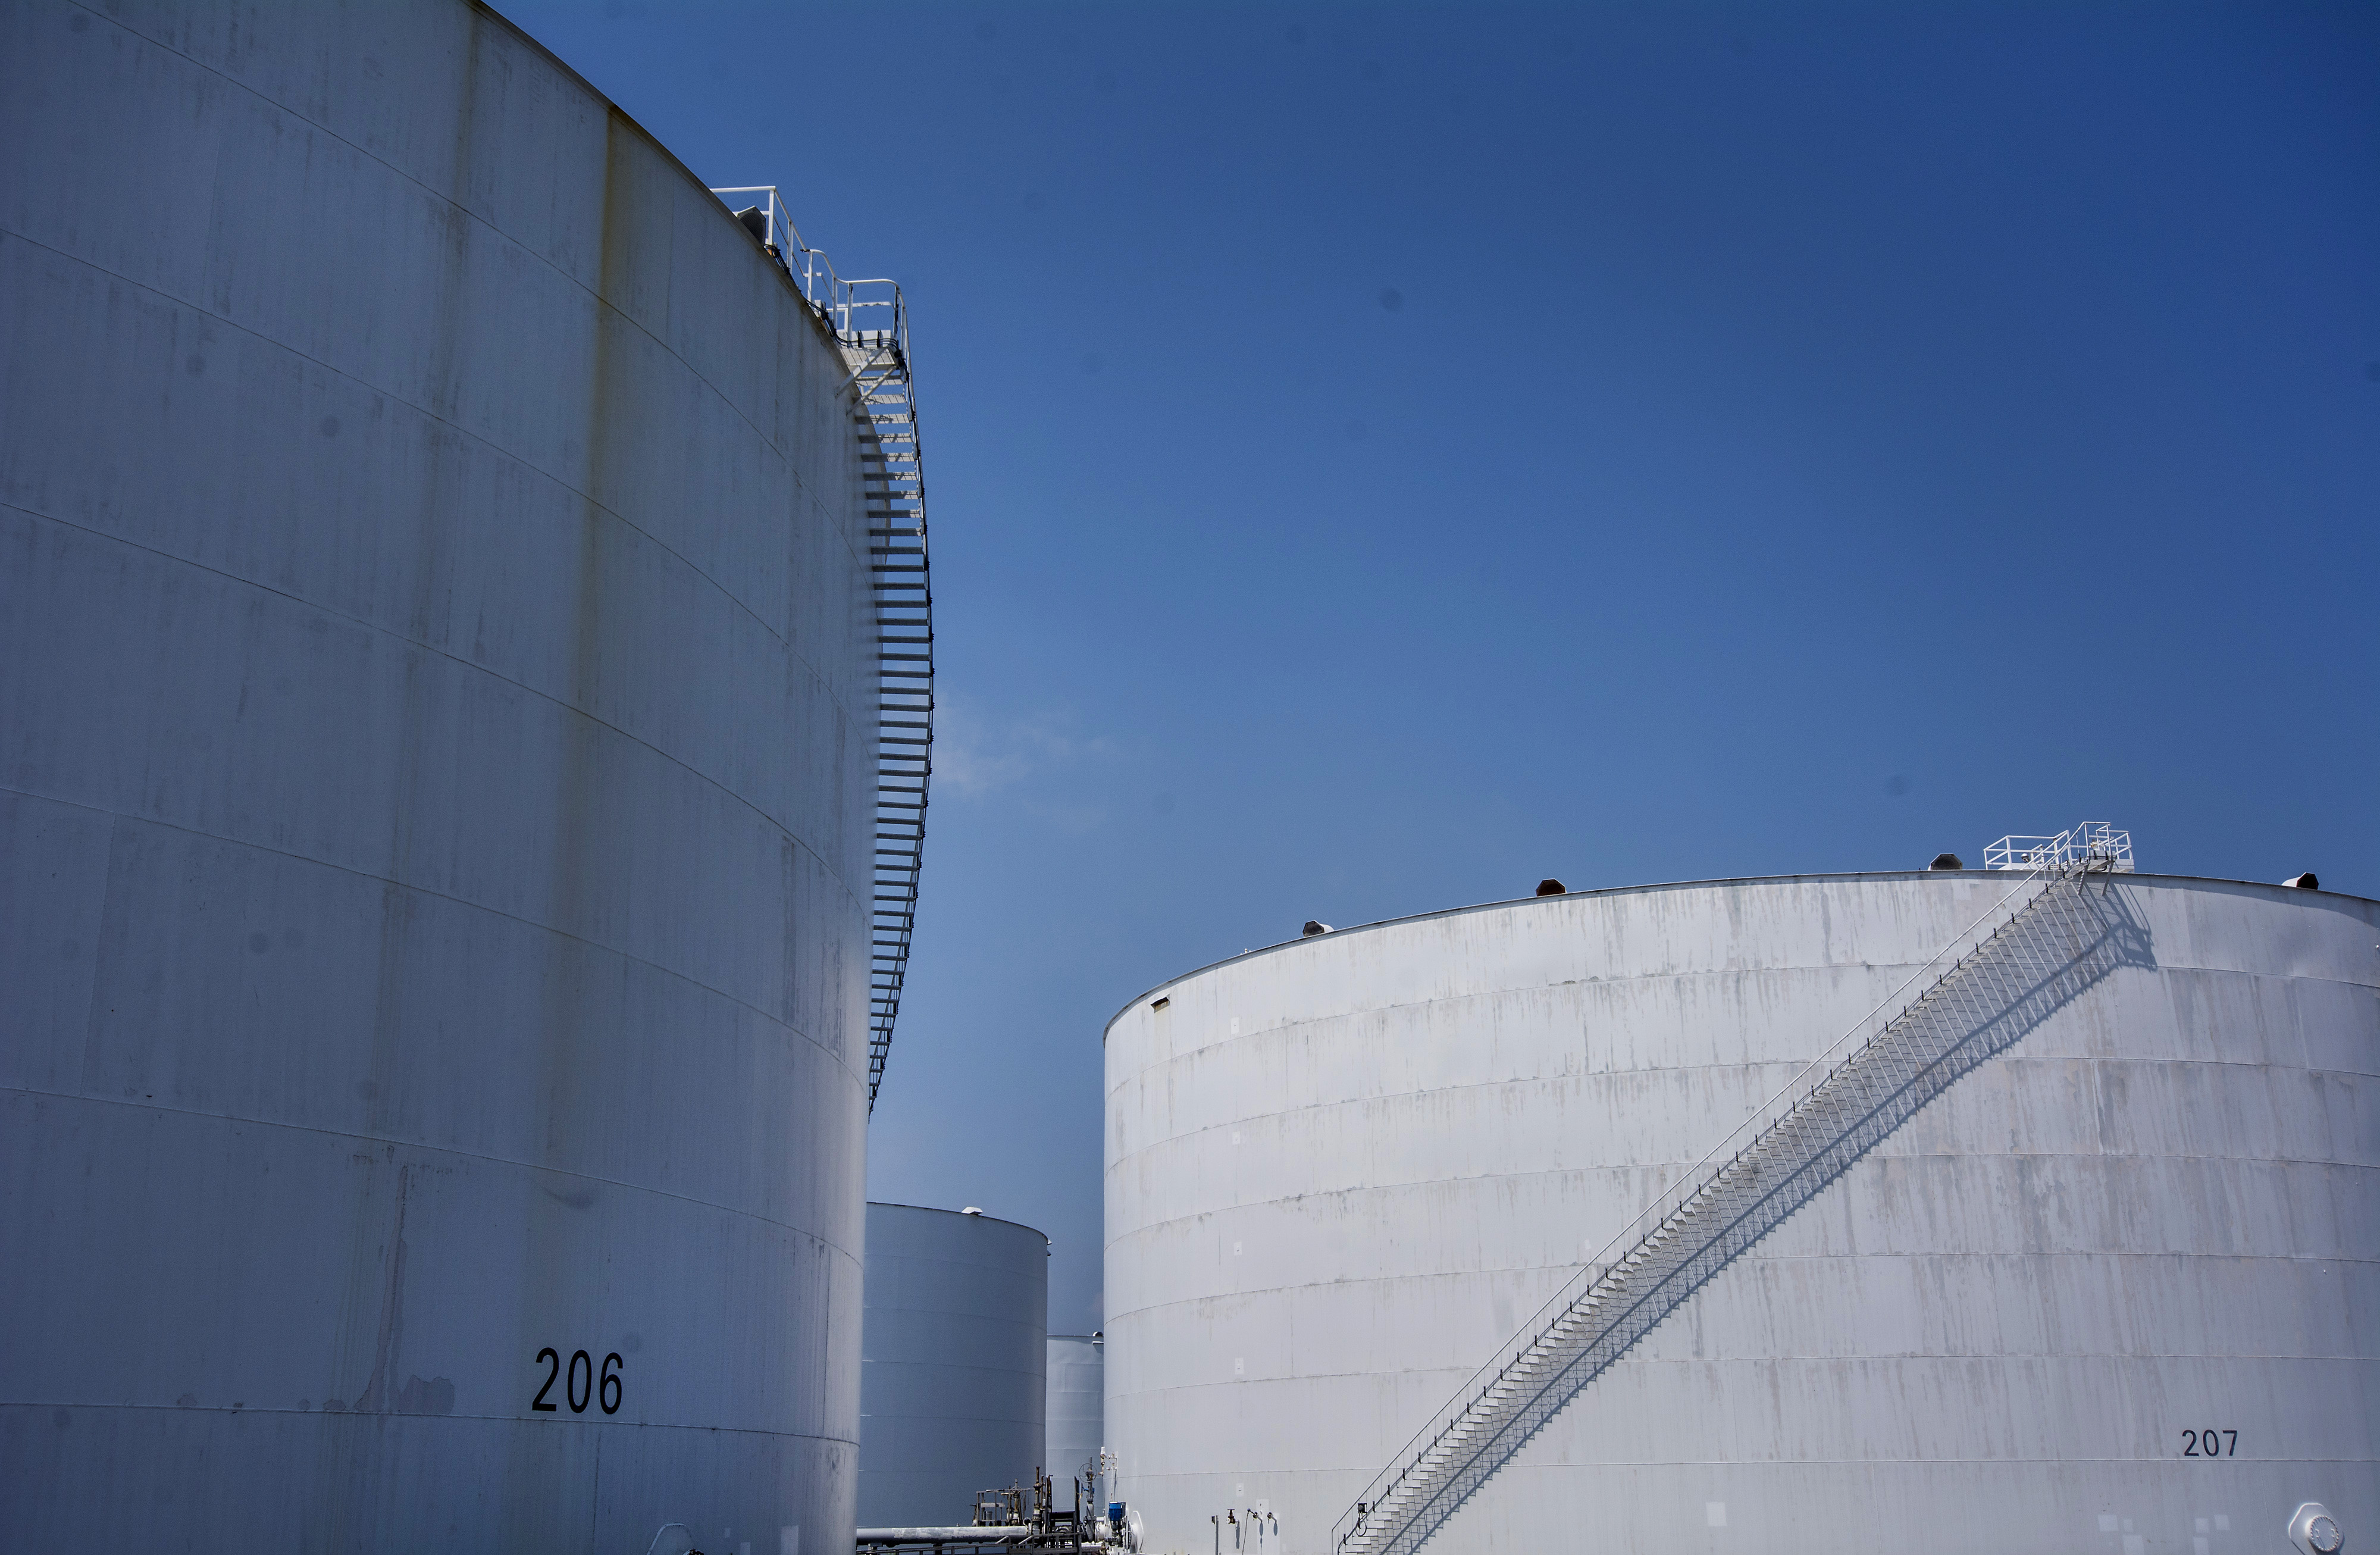 Storage tanks stand at the Irving Oil Ltd. refinery in Saint John, New Brunswick, Canada, on Tuesday, Aug. 5, 2014.